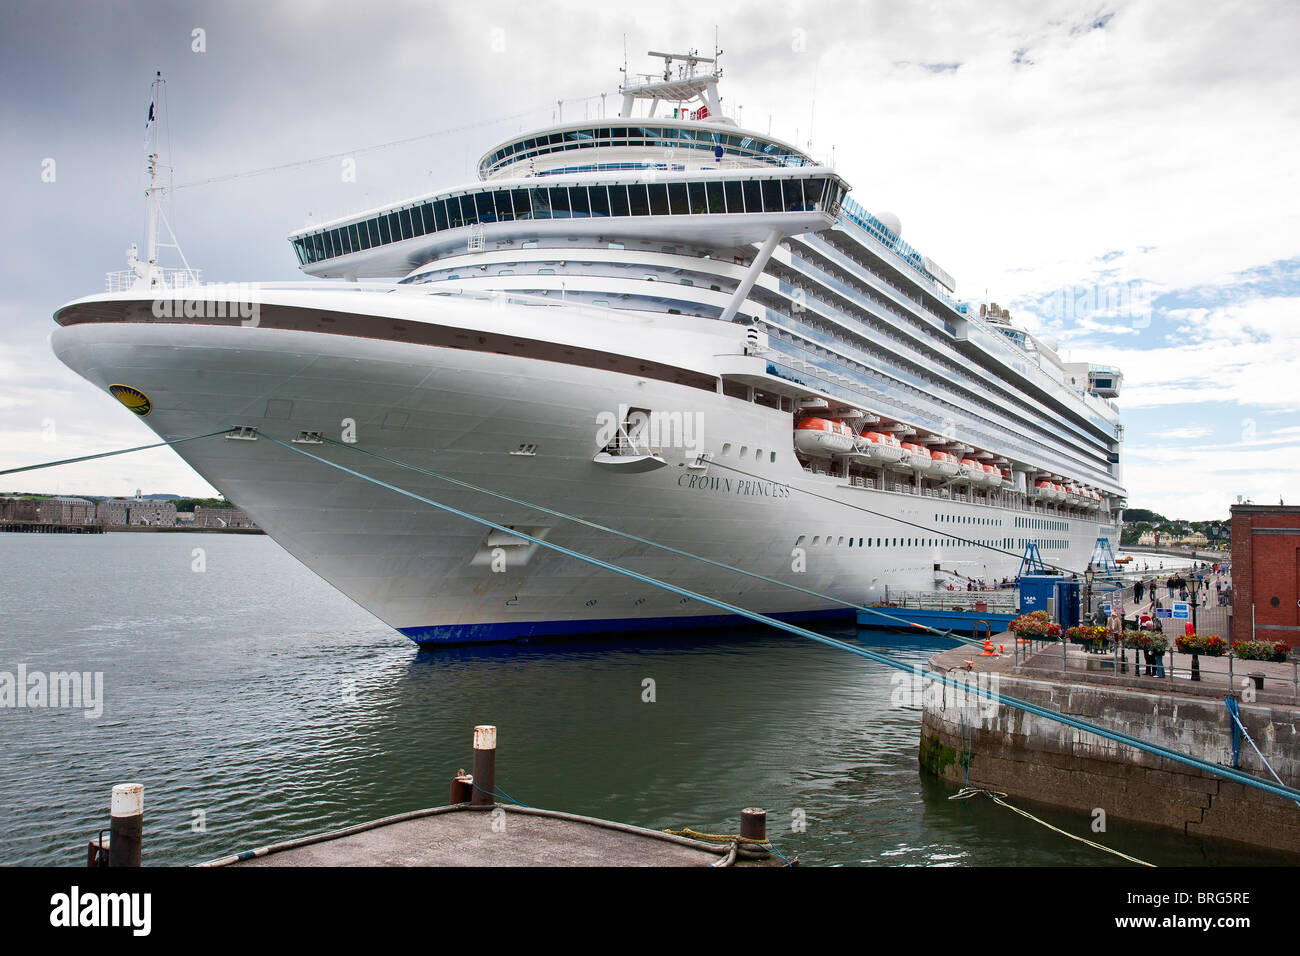 Crown Princess cruise ship Cobh harbour, County Cork, Ireland - Stock Image